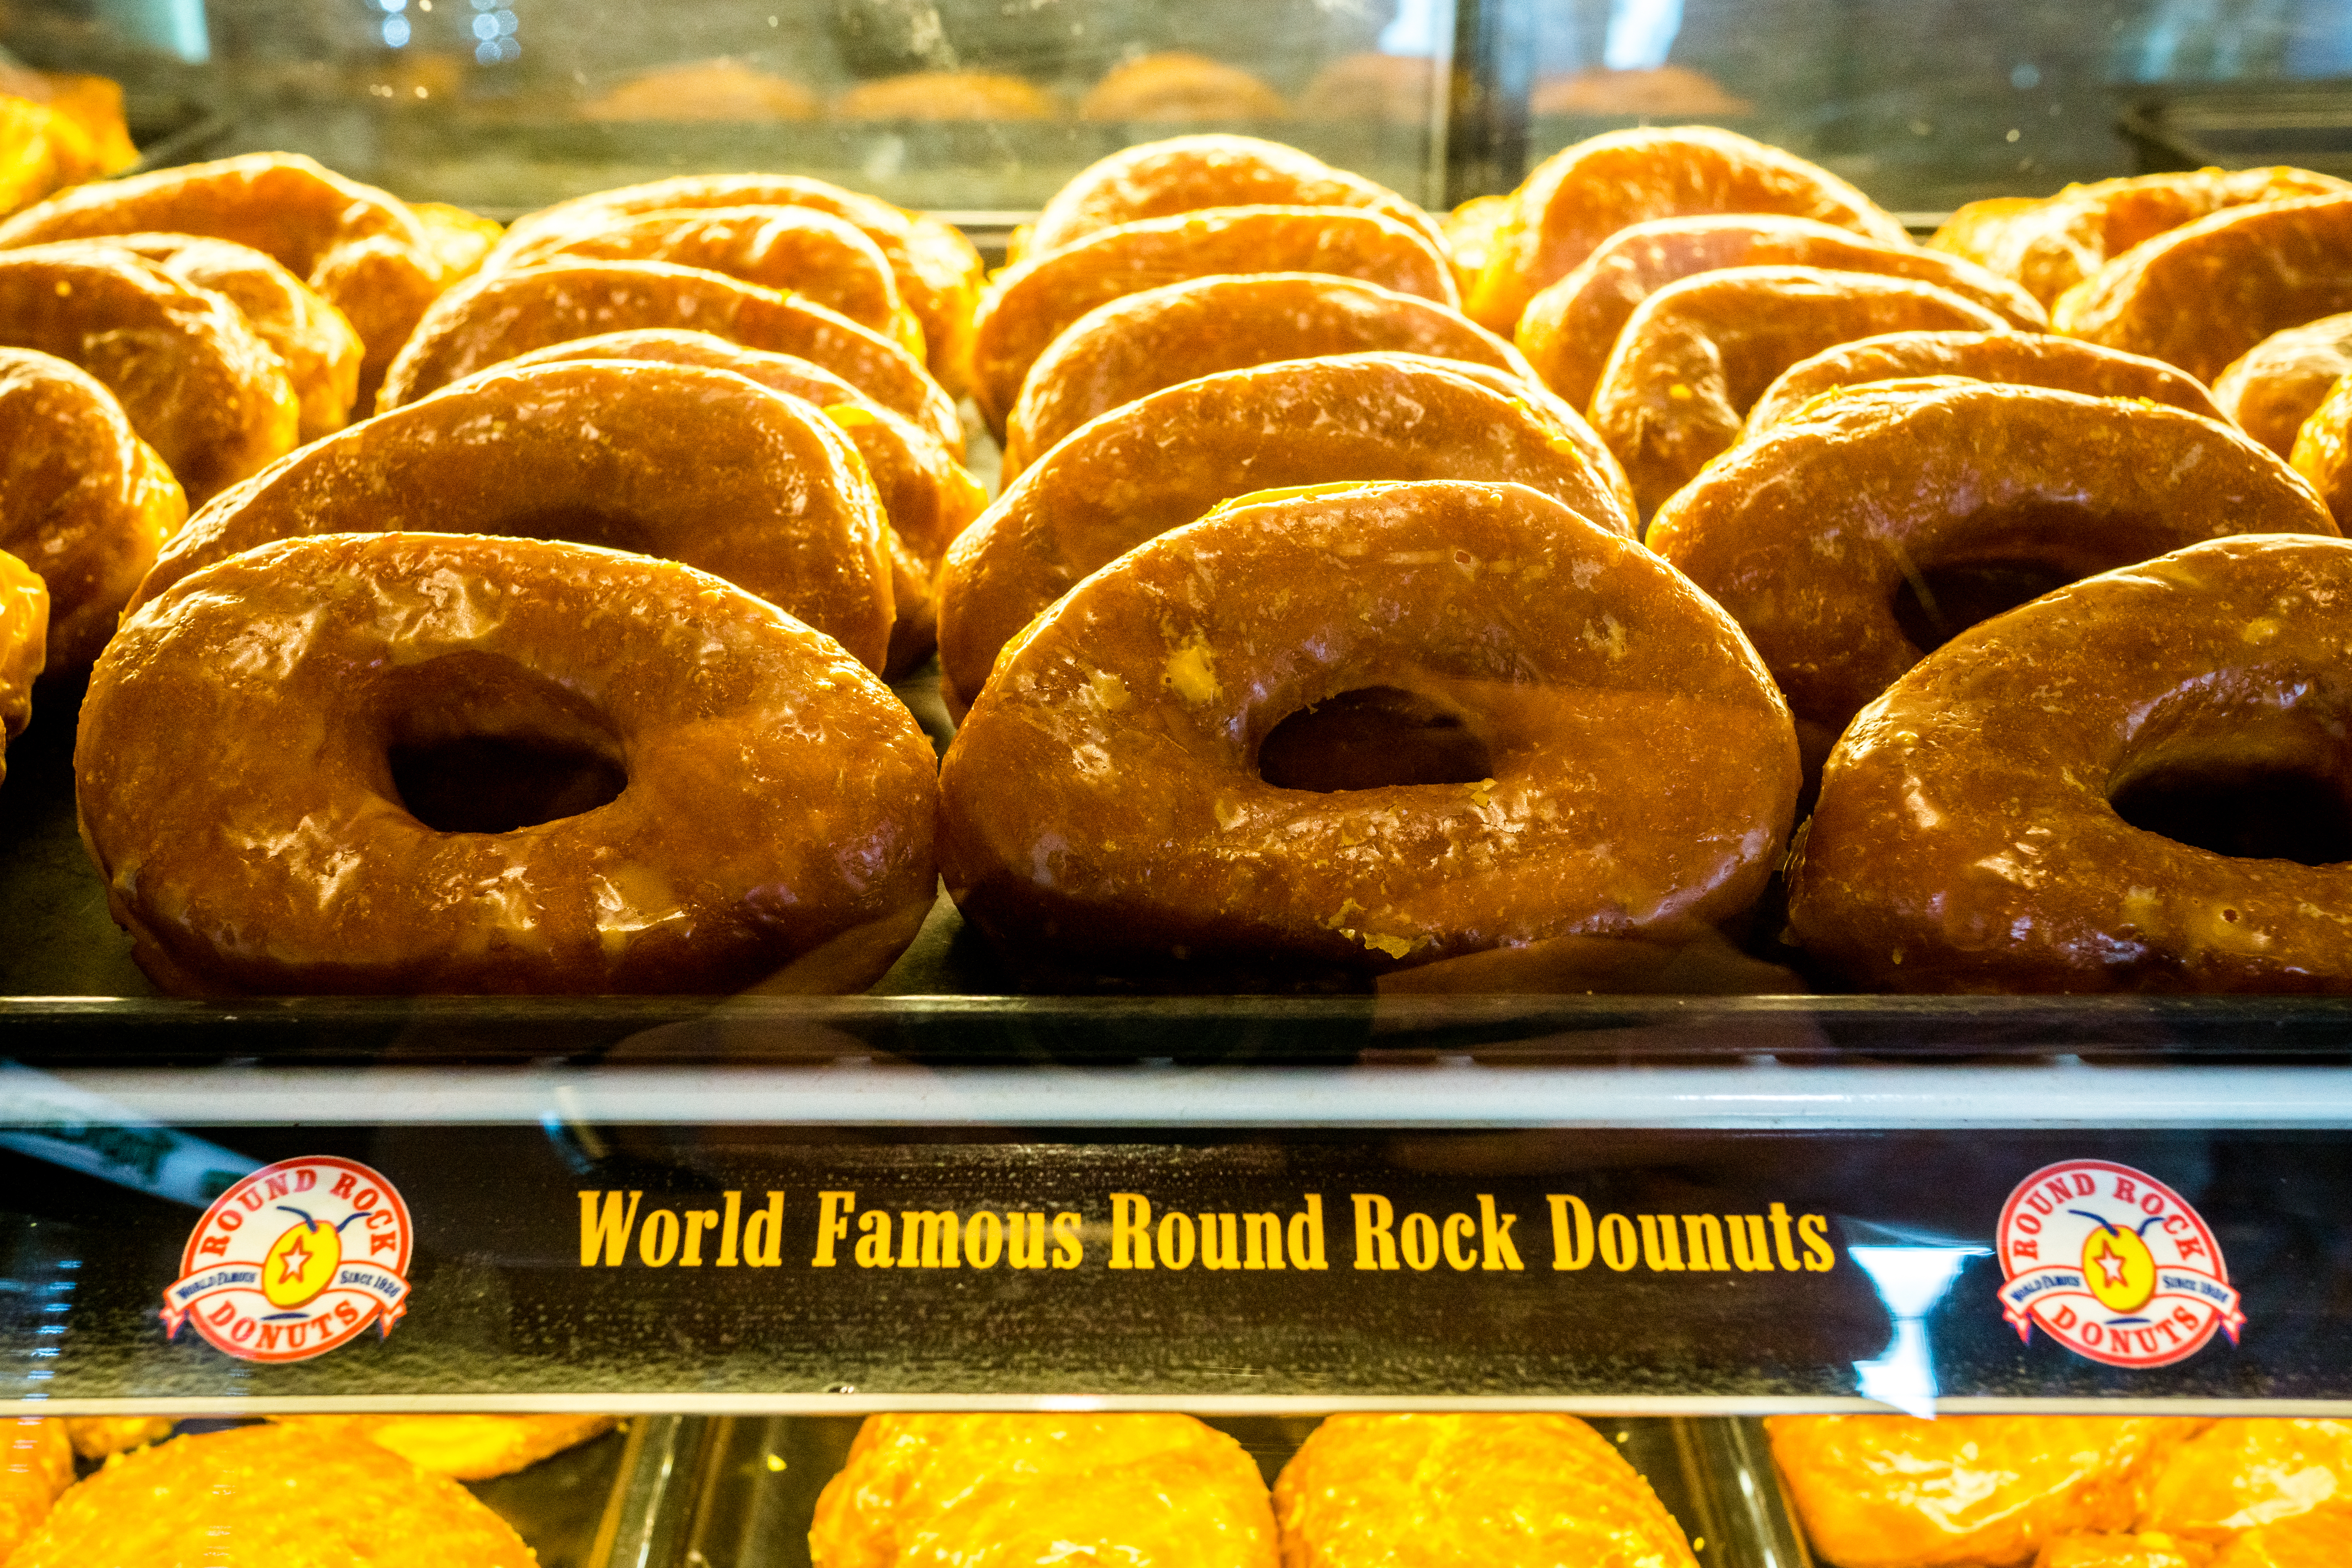 Doughnuts from Round Rock Donuts